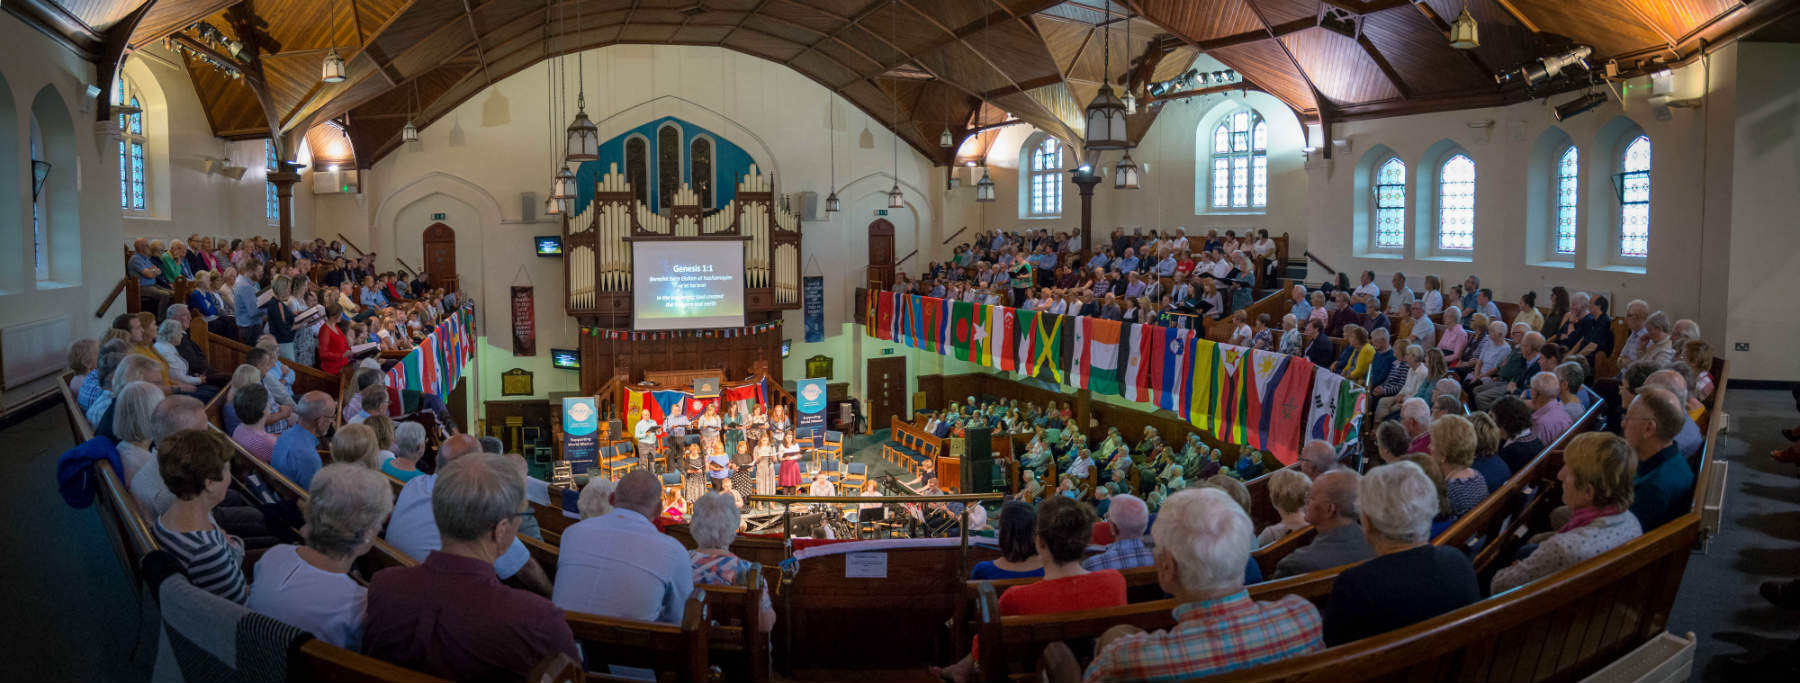 Our week at the Bangor Worldwide Missionary Convention